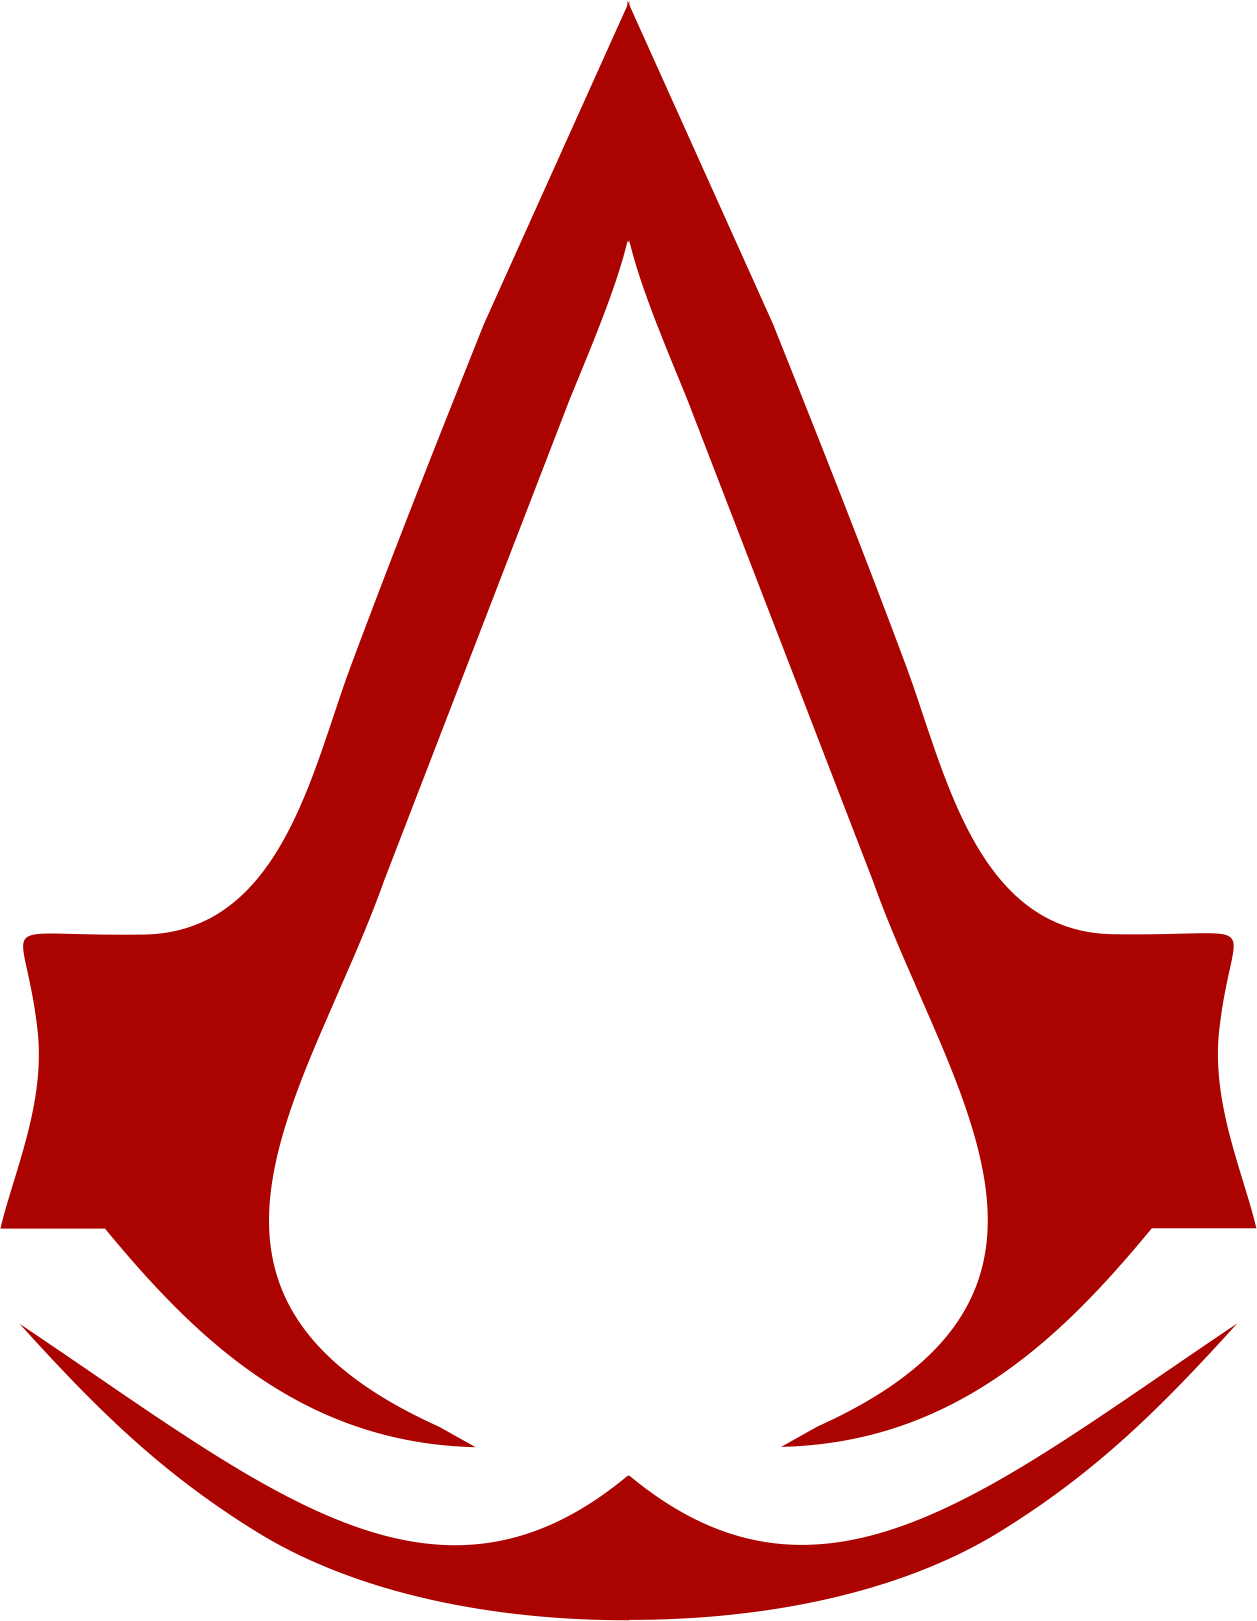 assassins creed logo transparent png stickpng #22673